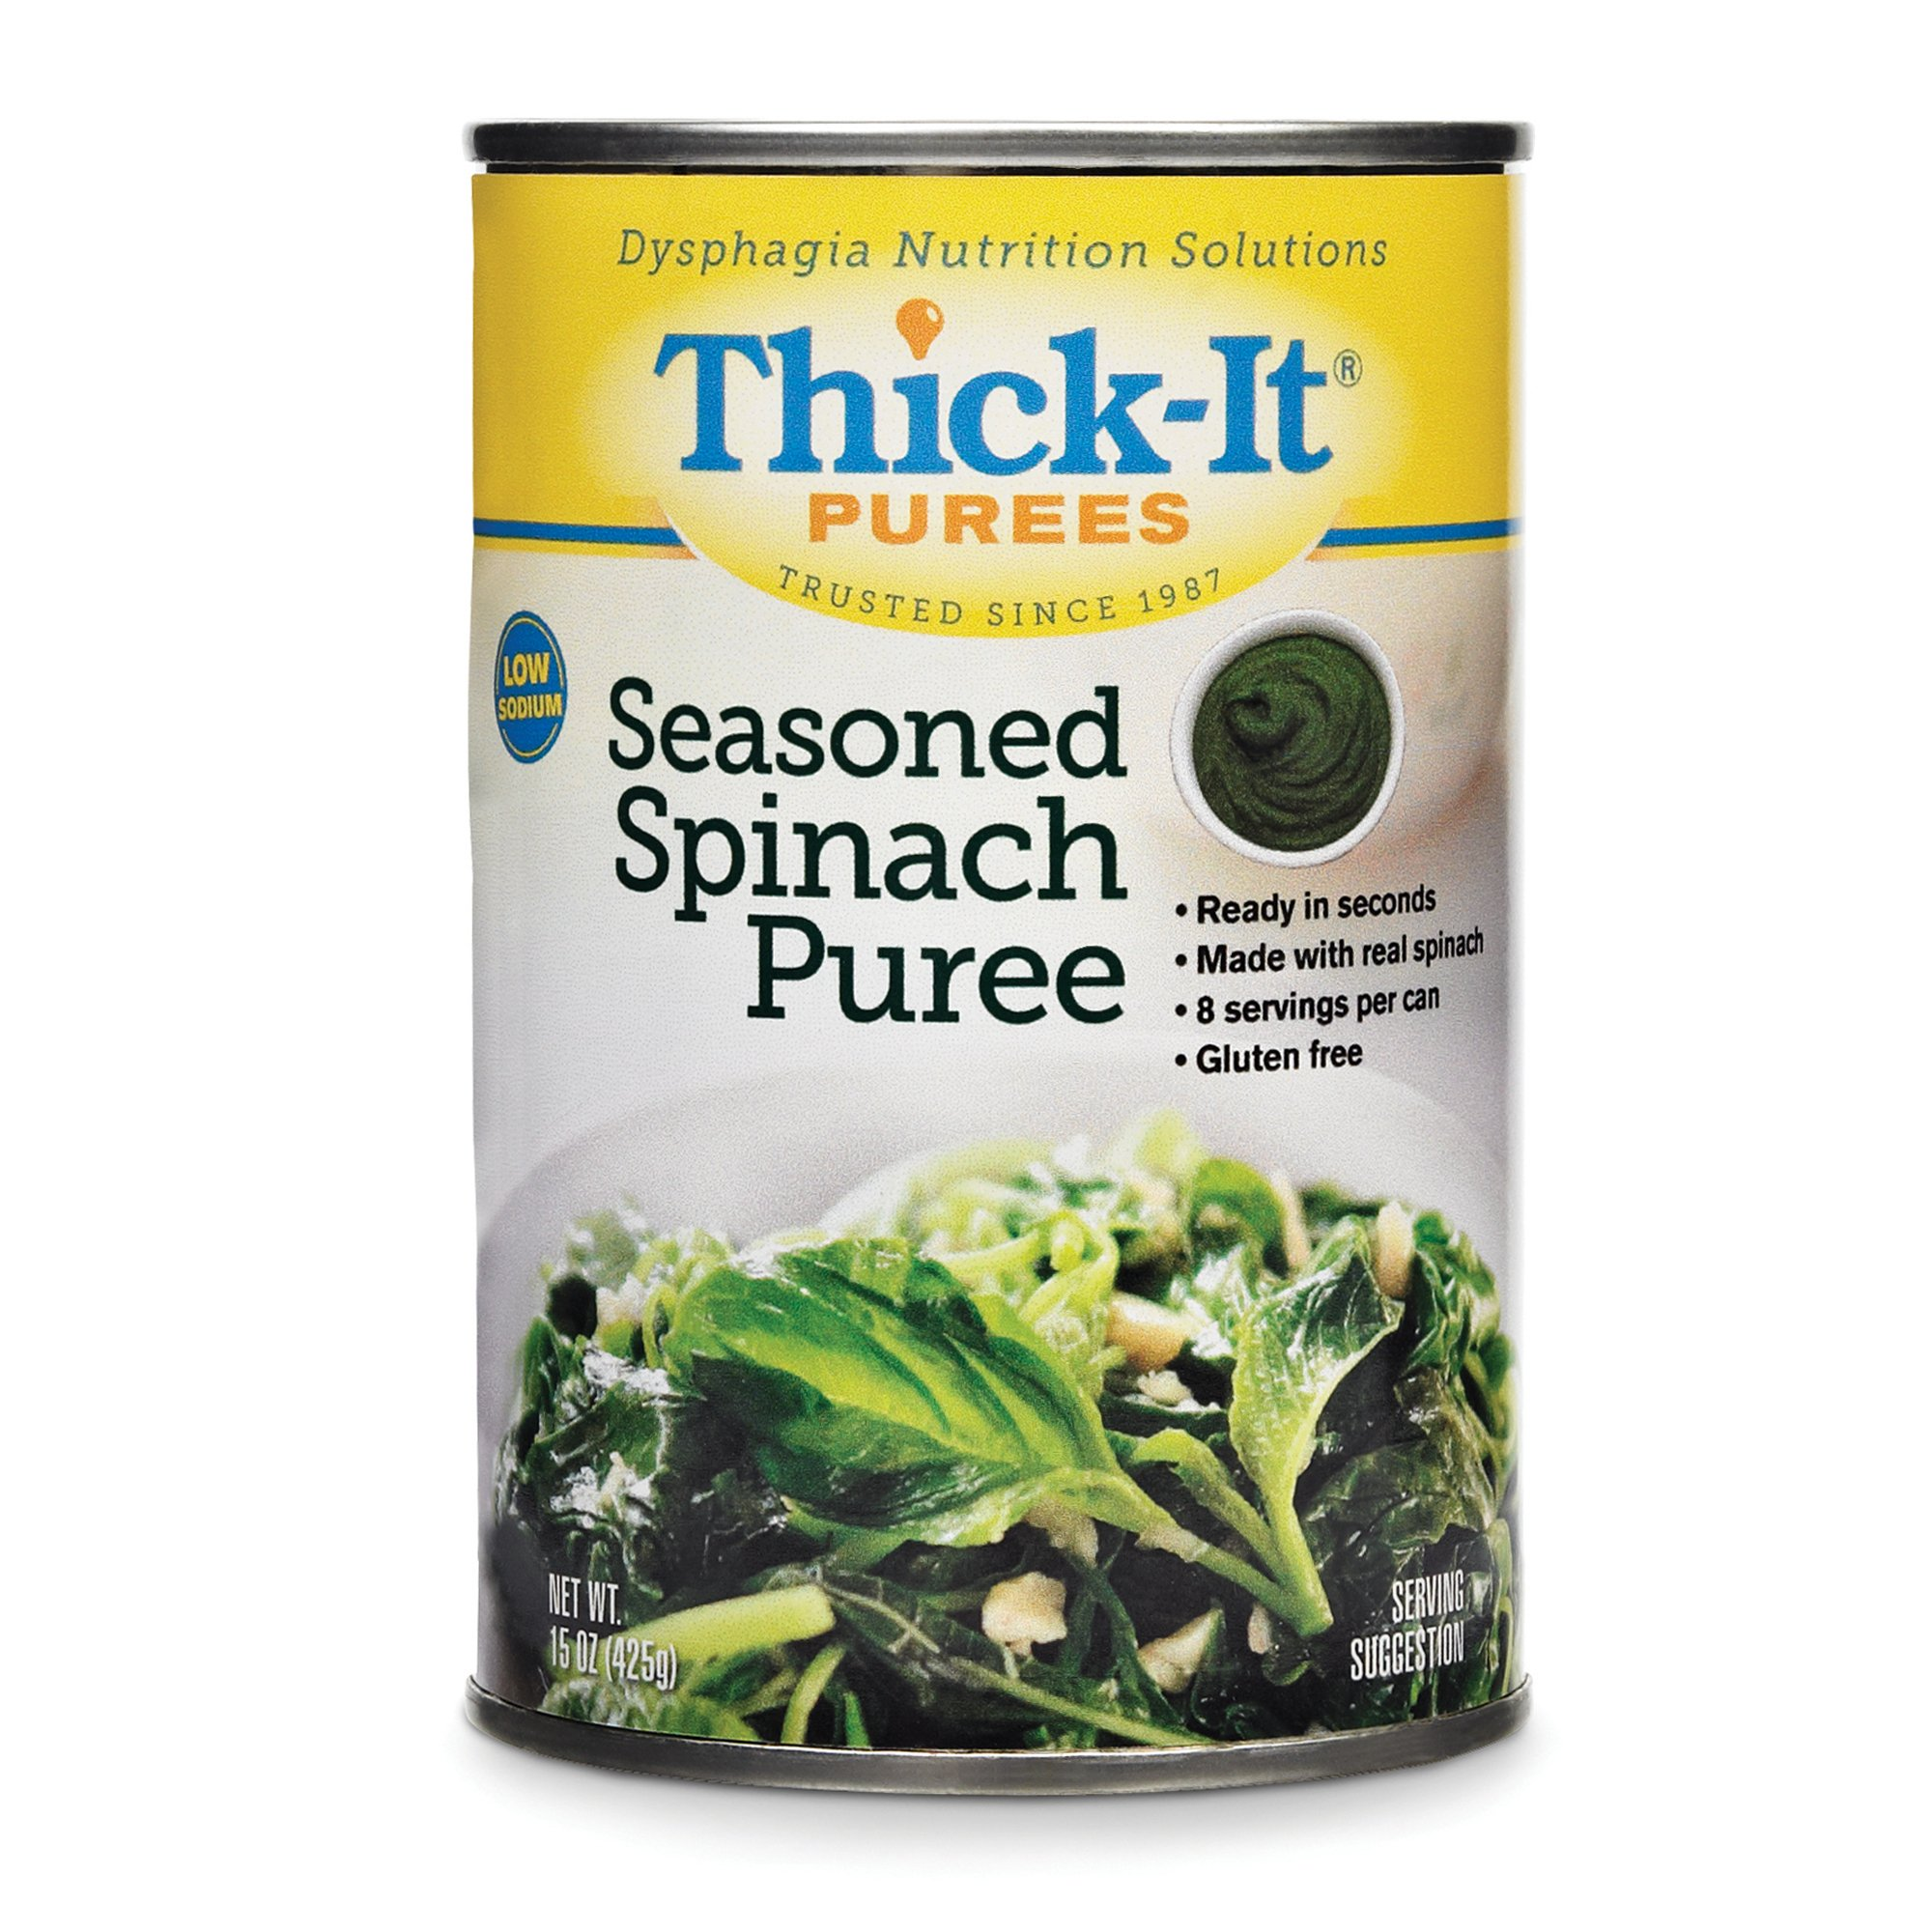 Thick-It Purees Seasoned Spinach Puree, 15 oz., H320-F8800, Case of 12